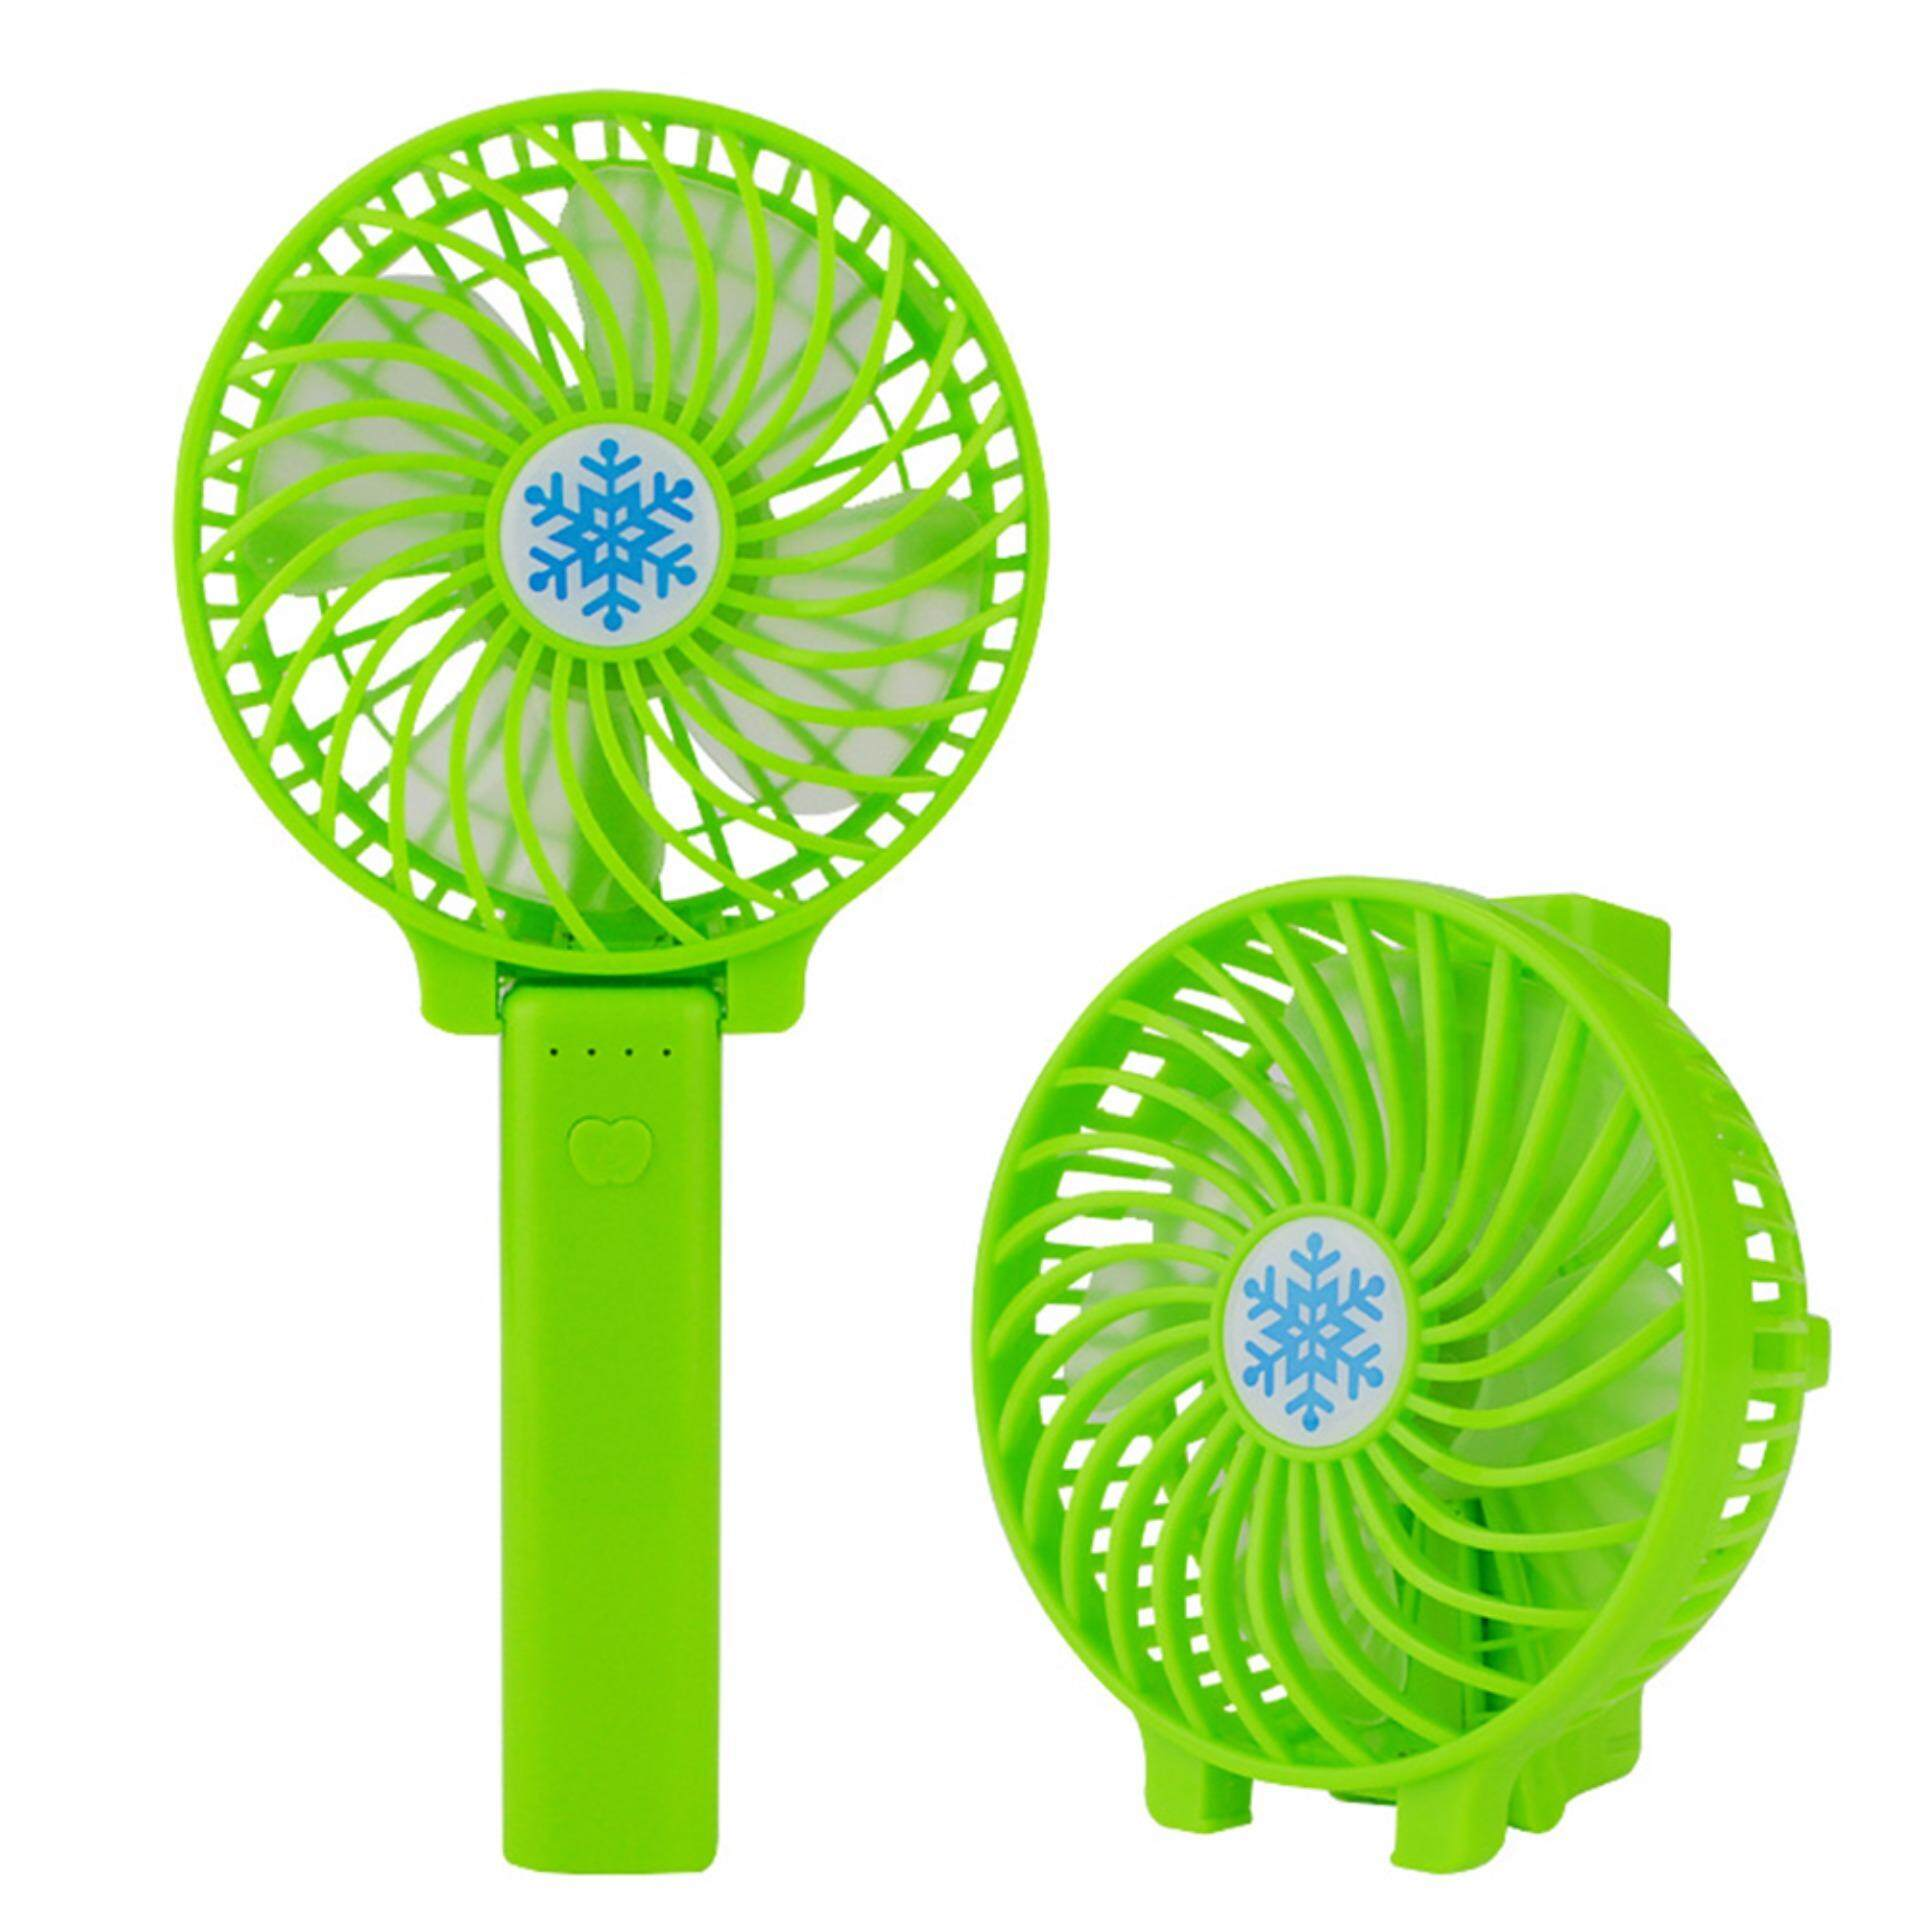 Features Two In One Pocket Fans Usb Gadget Portable Summer Micro Kipas Mini Fortable Foldable Fan Rechargeable Dual Power Mode Handheld Cooling Fansgreen